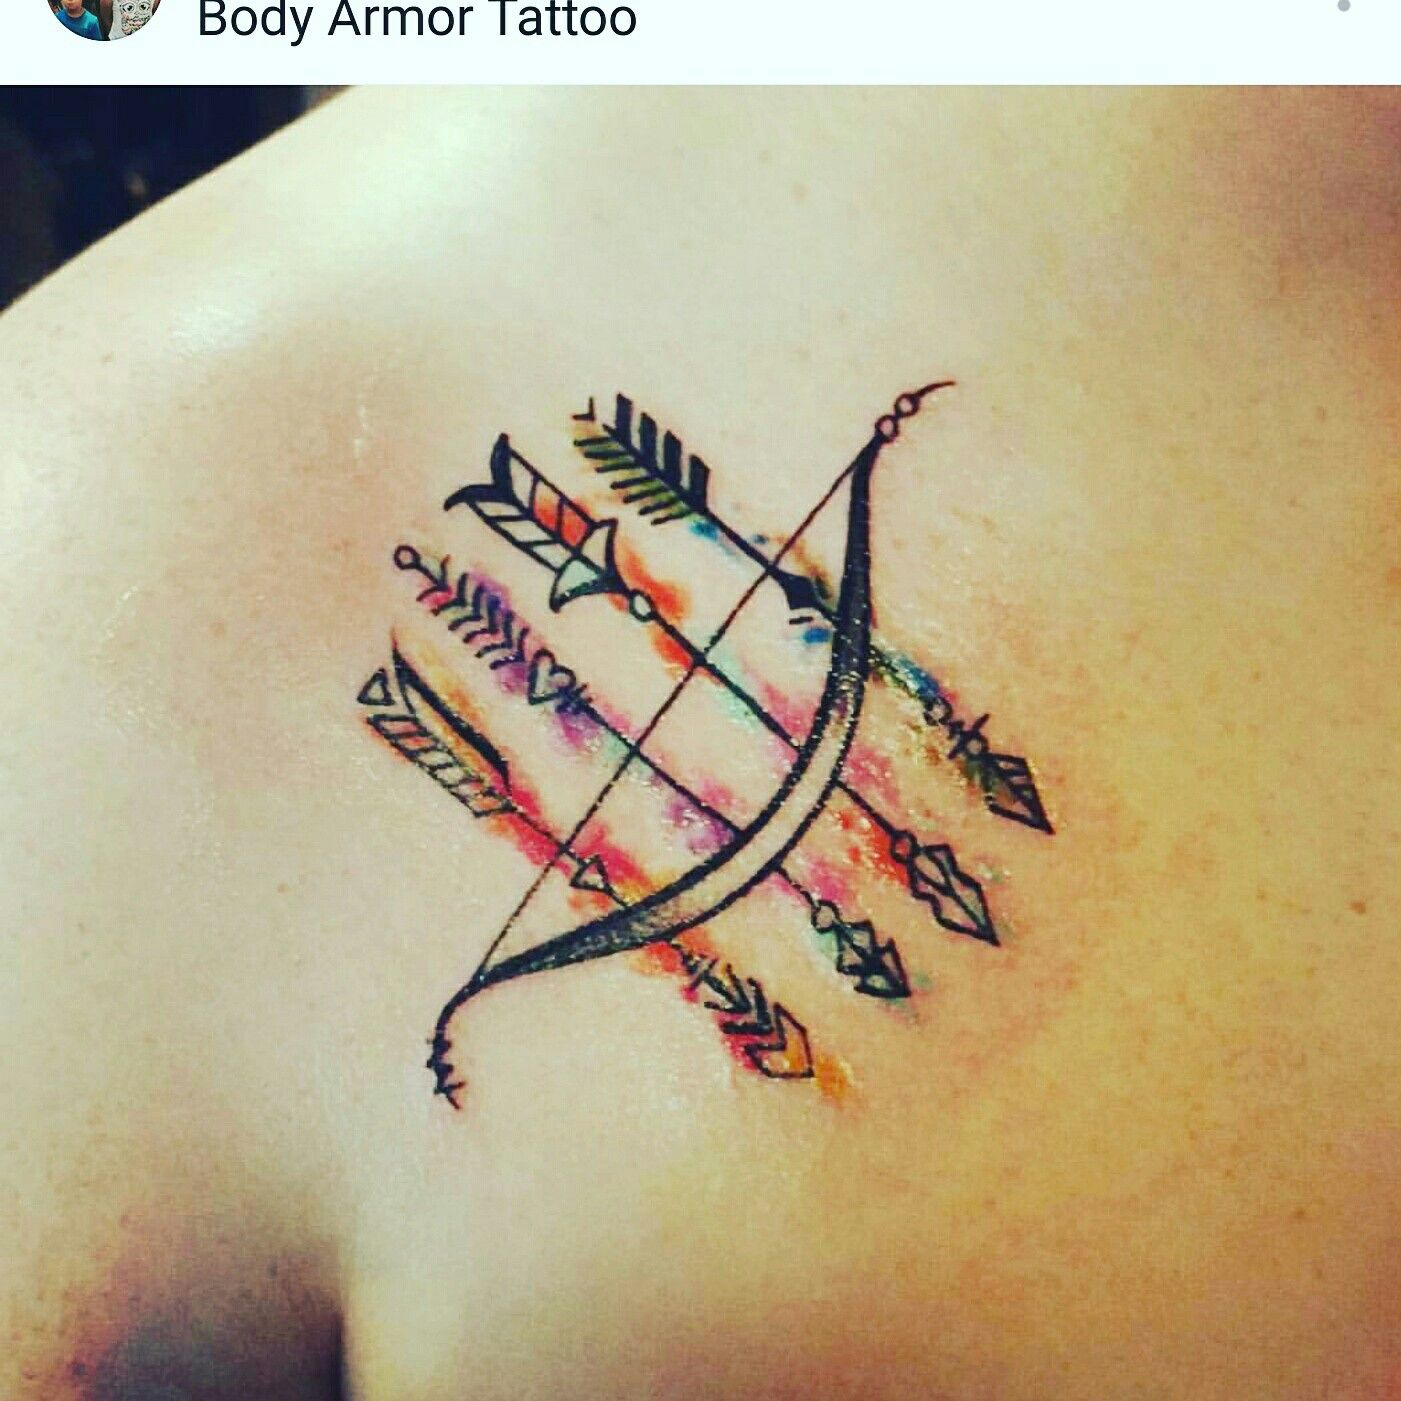 Love my new arrow tattoo. Represents each family member all headed in the same direction with the same focus and goals.